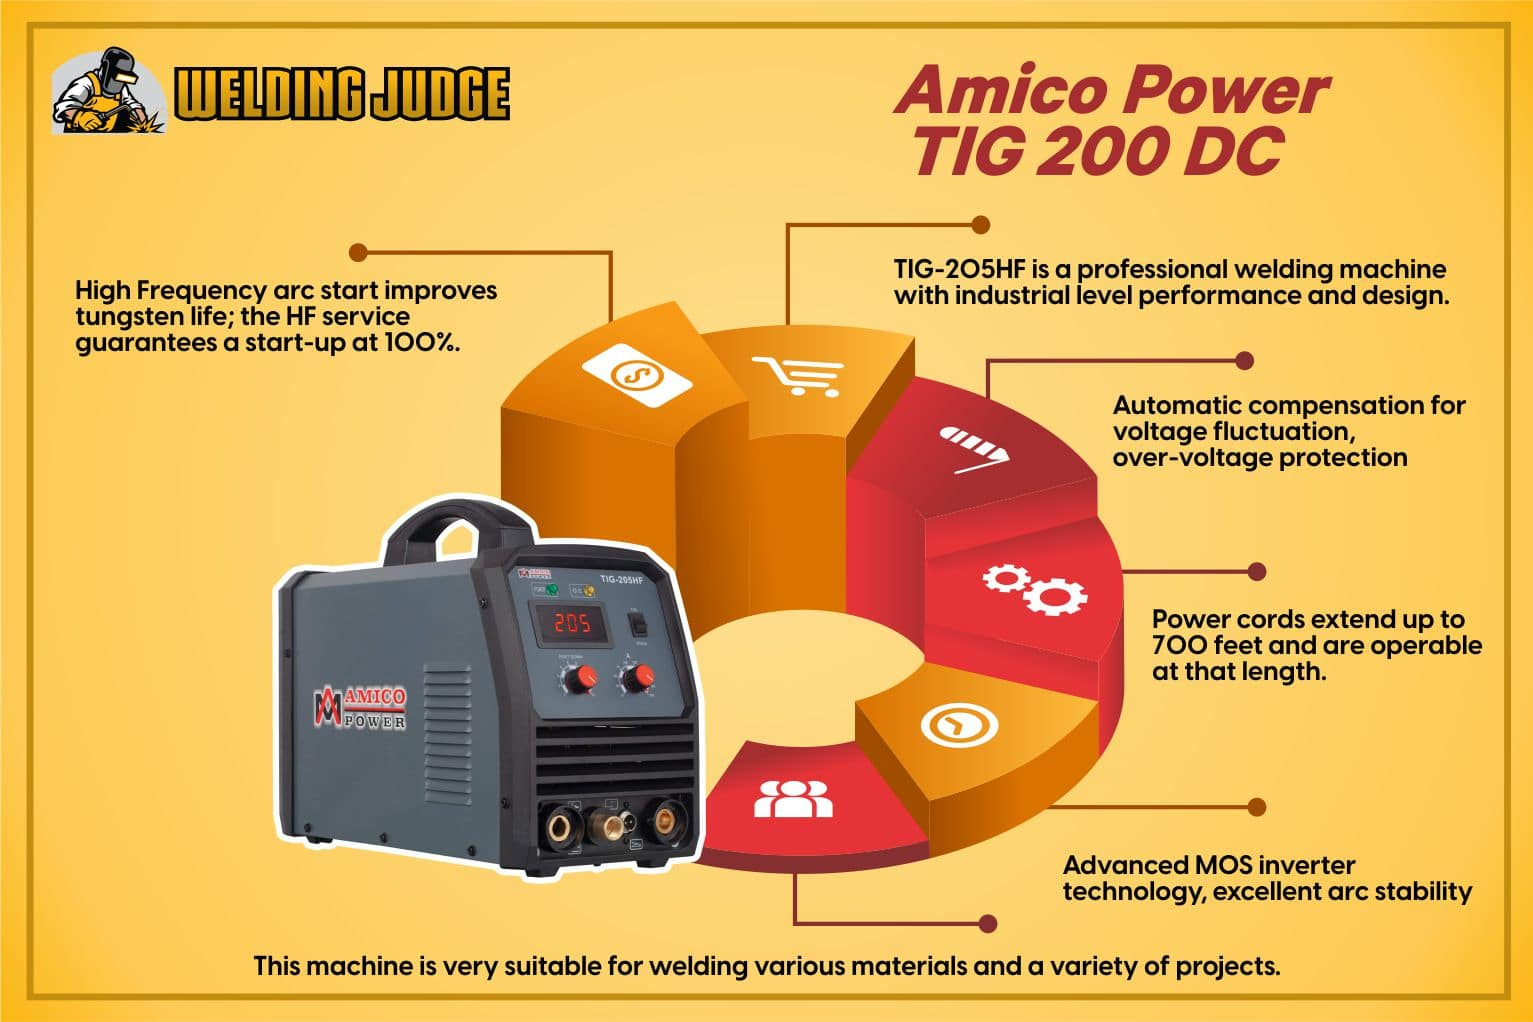 Amico Power TIG 200 DC TIG Welder Infographic Review